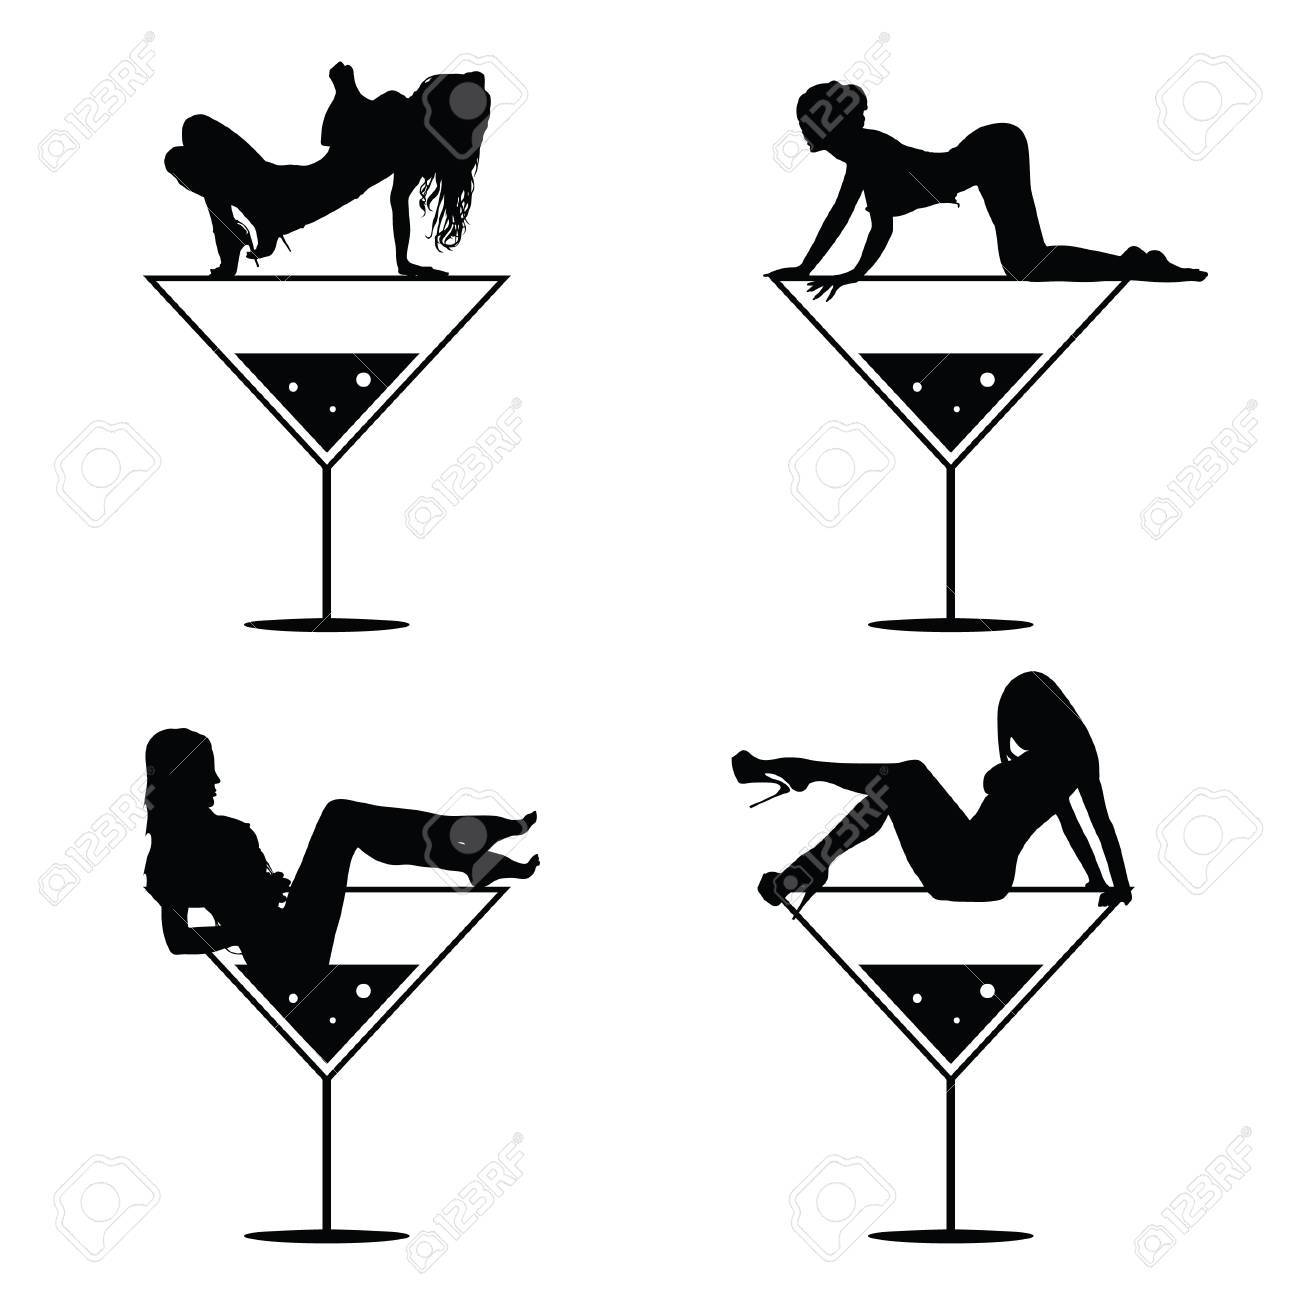 girl and martini black vector silhouette on white royalty free rh 123rf com Lady in Martini Glass Clip Art Martini Glass Clip Art Picture for Invitations Party